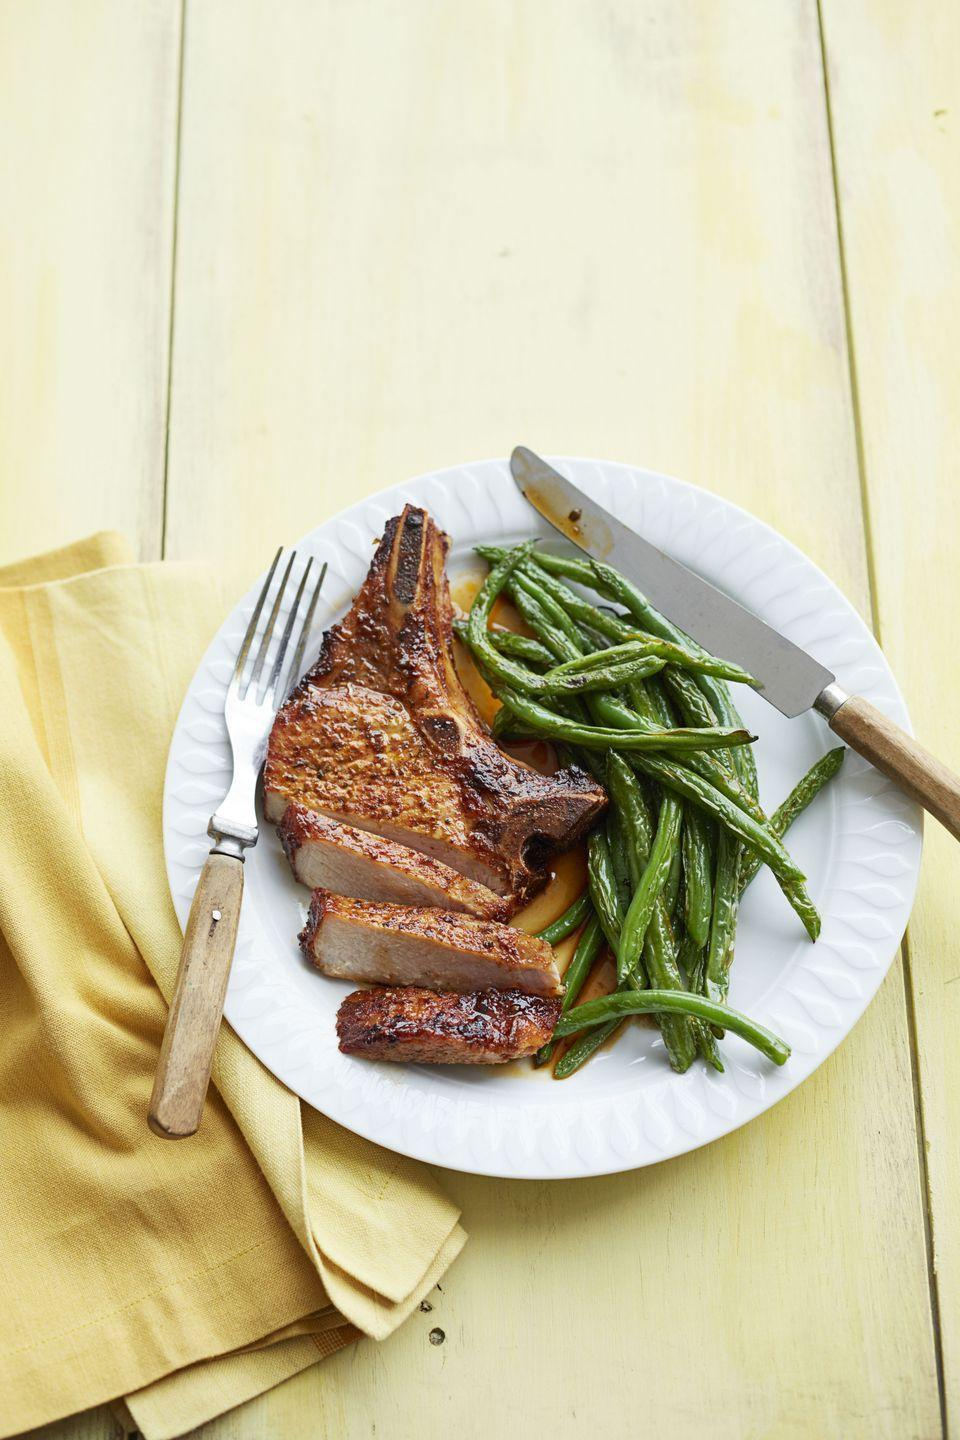 "<p>If you're not using your broiler setting, you're missing out. Thanks to the high heat, these chops cook up in minutes.</p><p><a href=""https://www.goodhousekeeping.com/food-recipes/a15691/new-orleans-pork-charred-beans-recipe-ghk0214/"" rel=""nofollow noopener"" target=""_blank"" data-ylk=""slk:Get the recipe for New Orleans Pork and Charred Beans »"" class=""link rapid-noclick-resp""><em>Get the recipe for New Orleans Pork and Charred Beans »</em></a></p>"